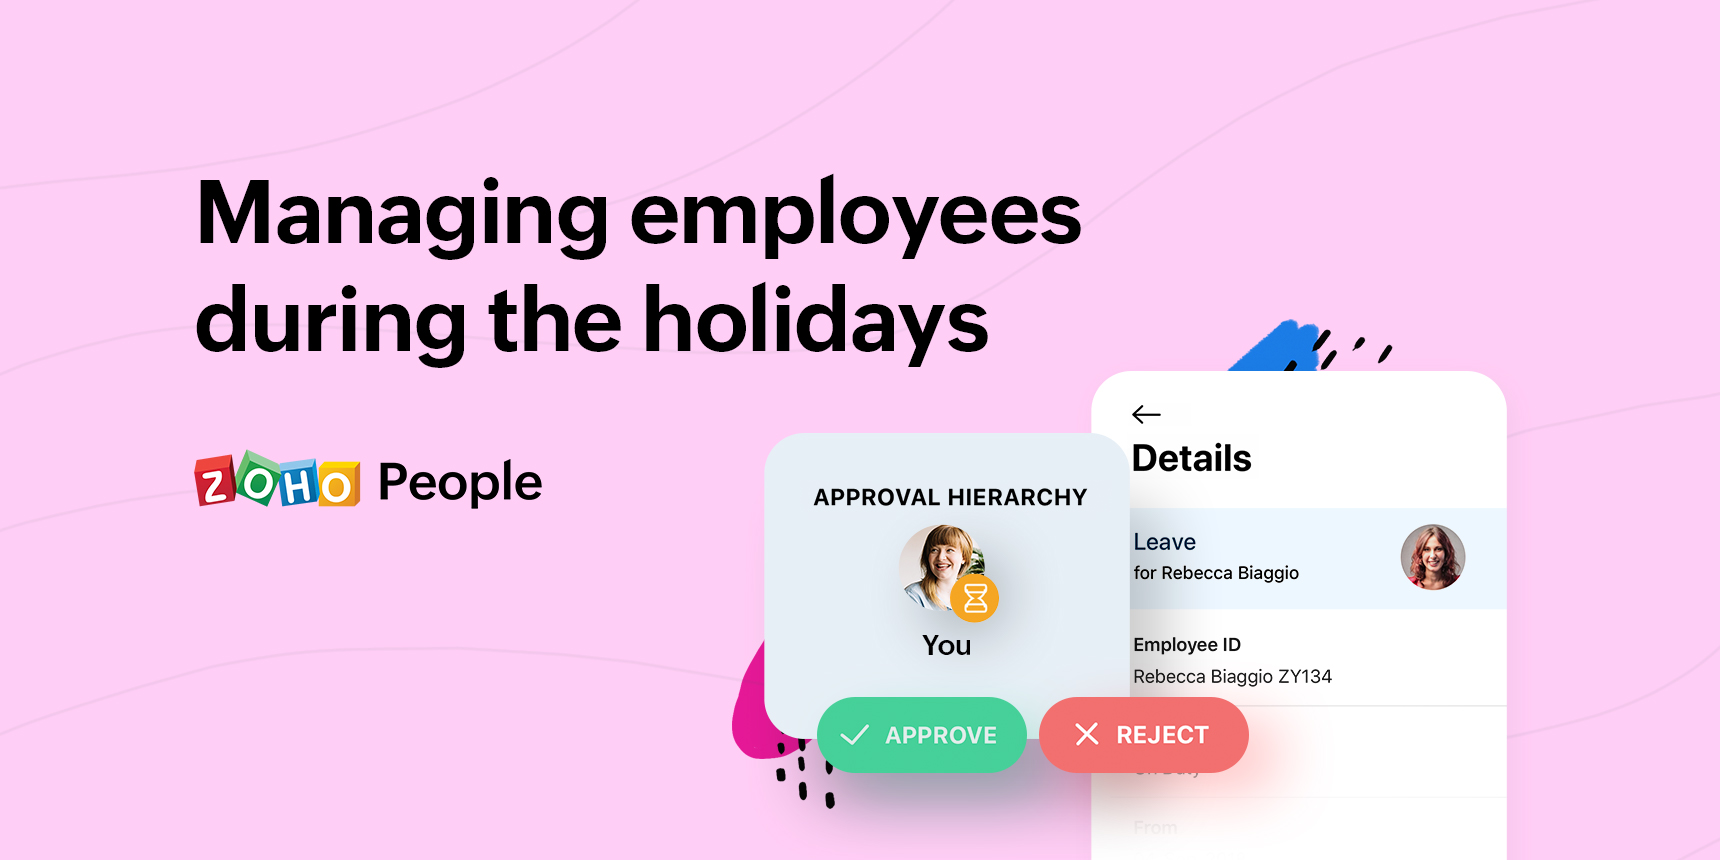 Managing employees during the holidays